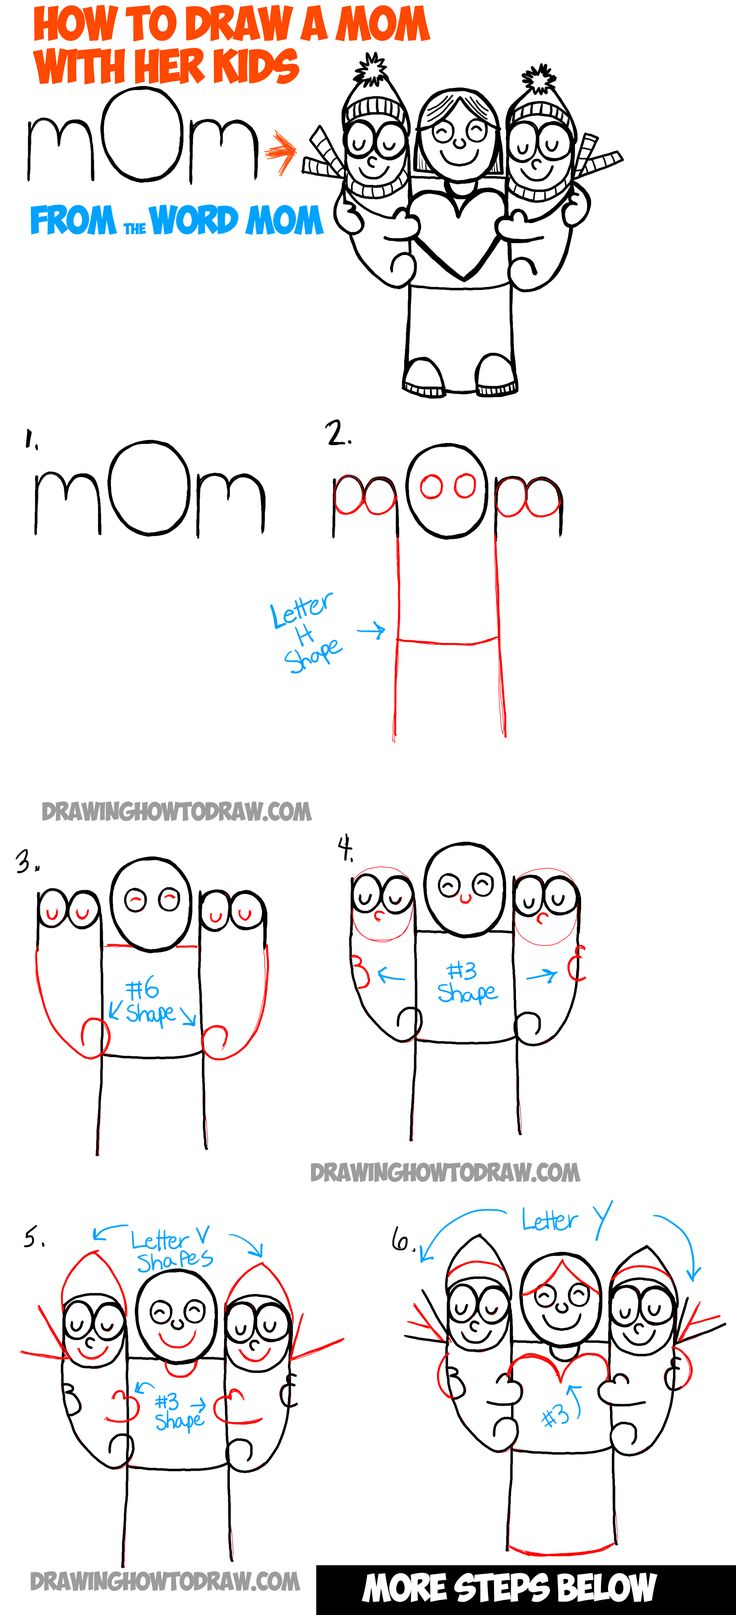 how to draw cartoon mom and kids from the word mom simple step